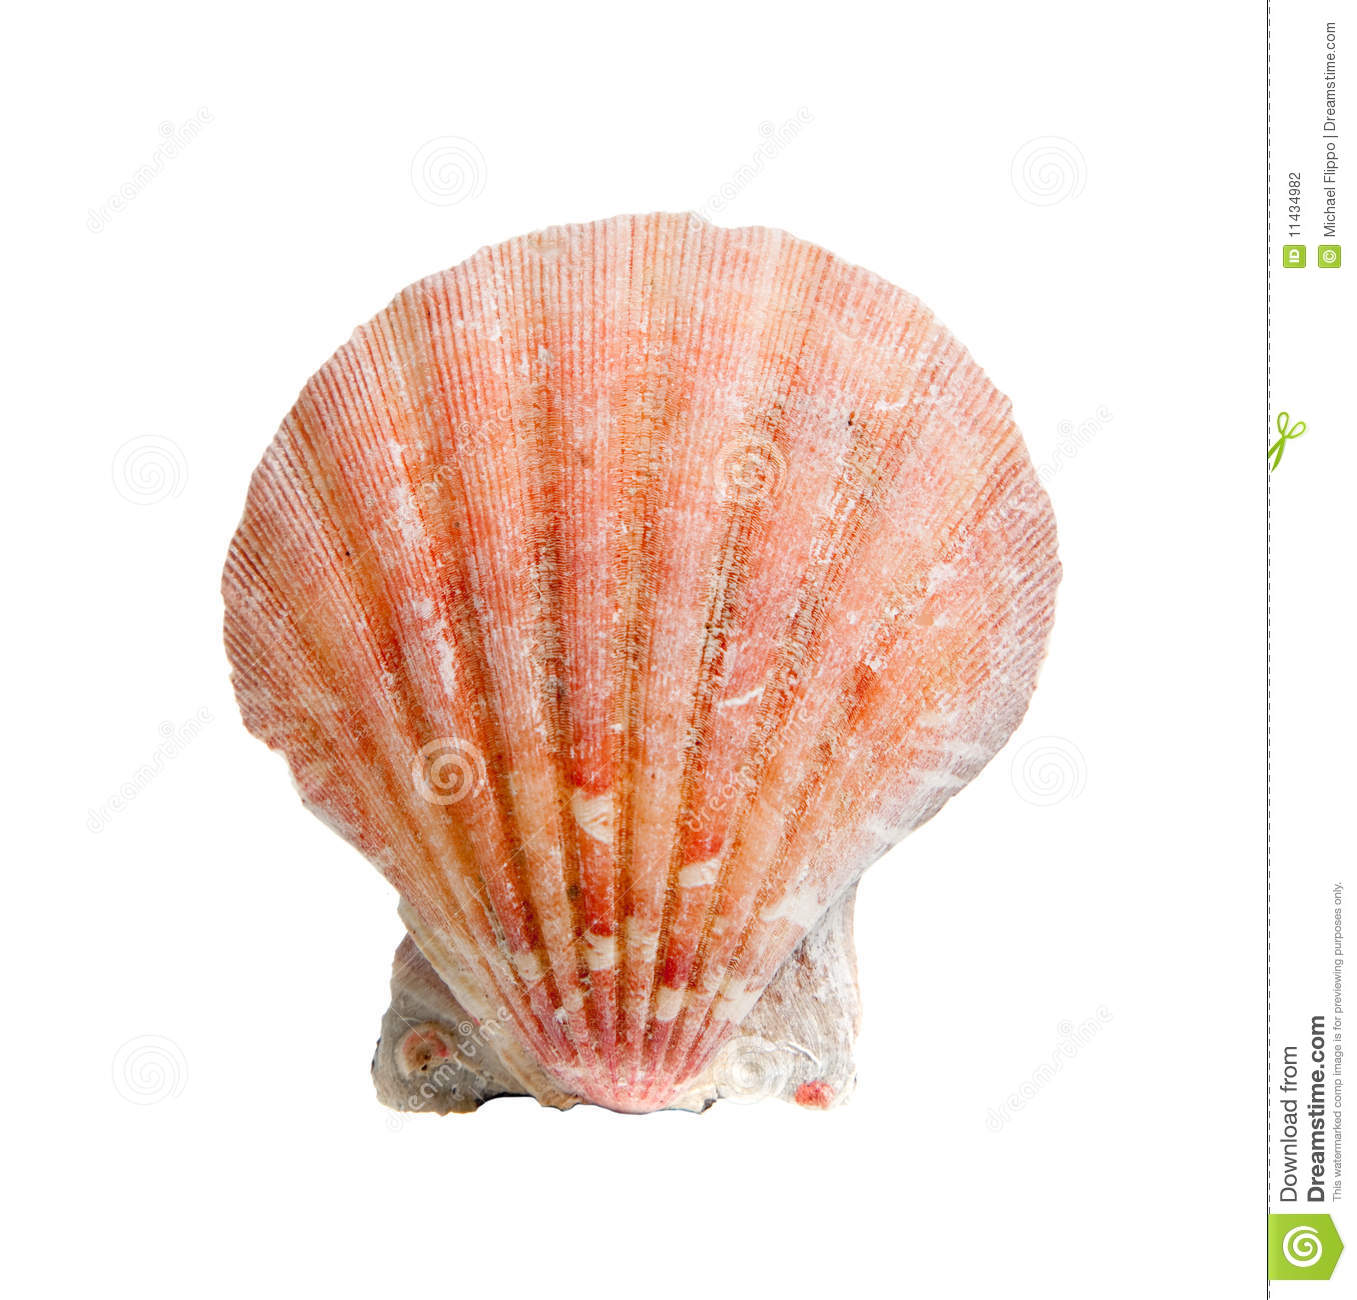 A sea shell or scallop on white